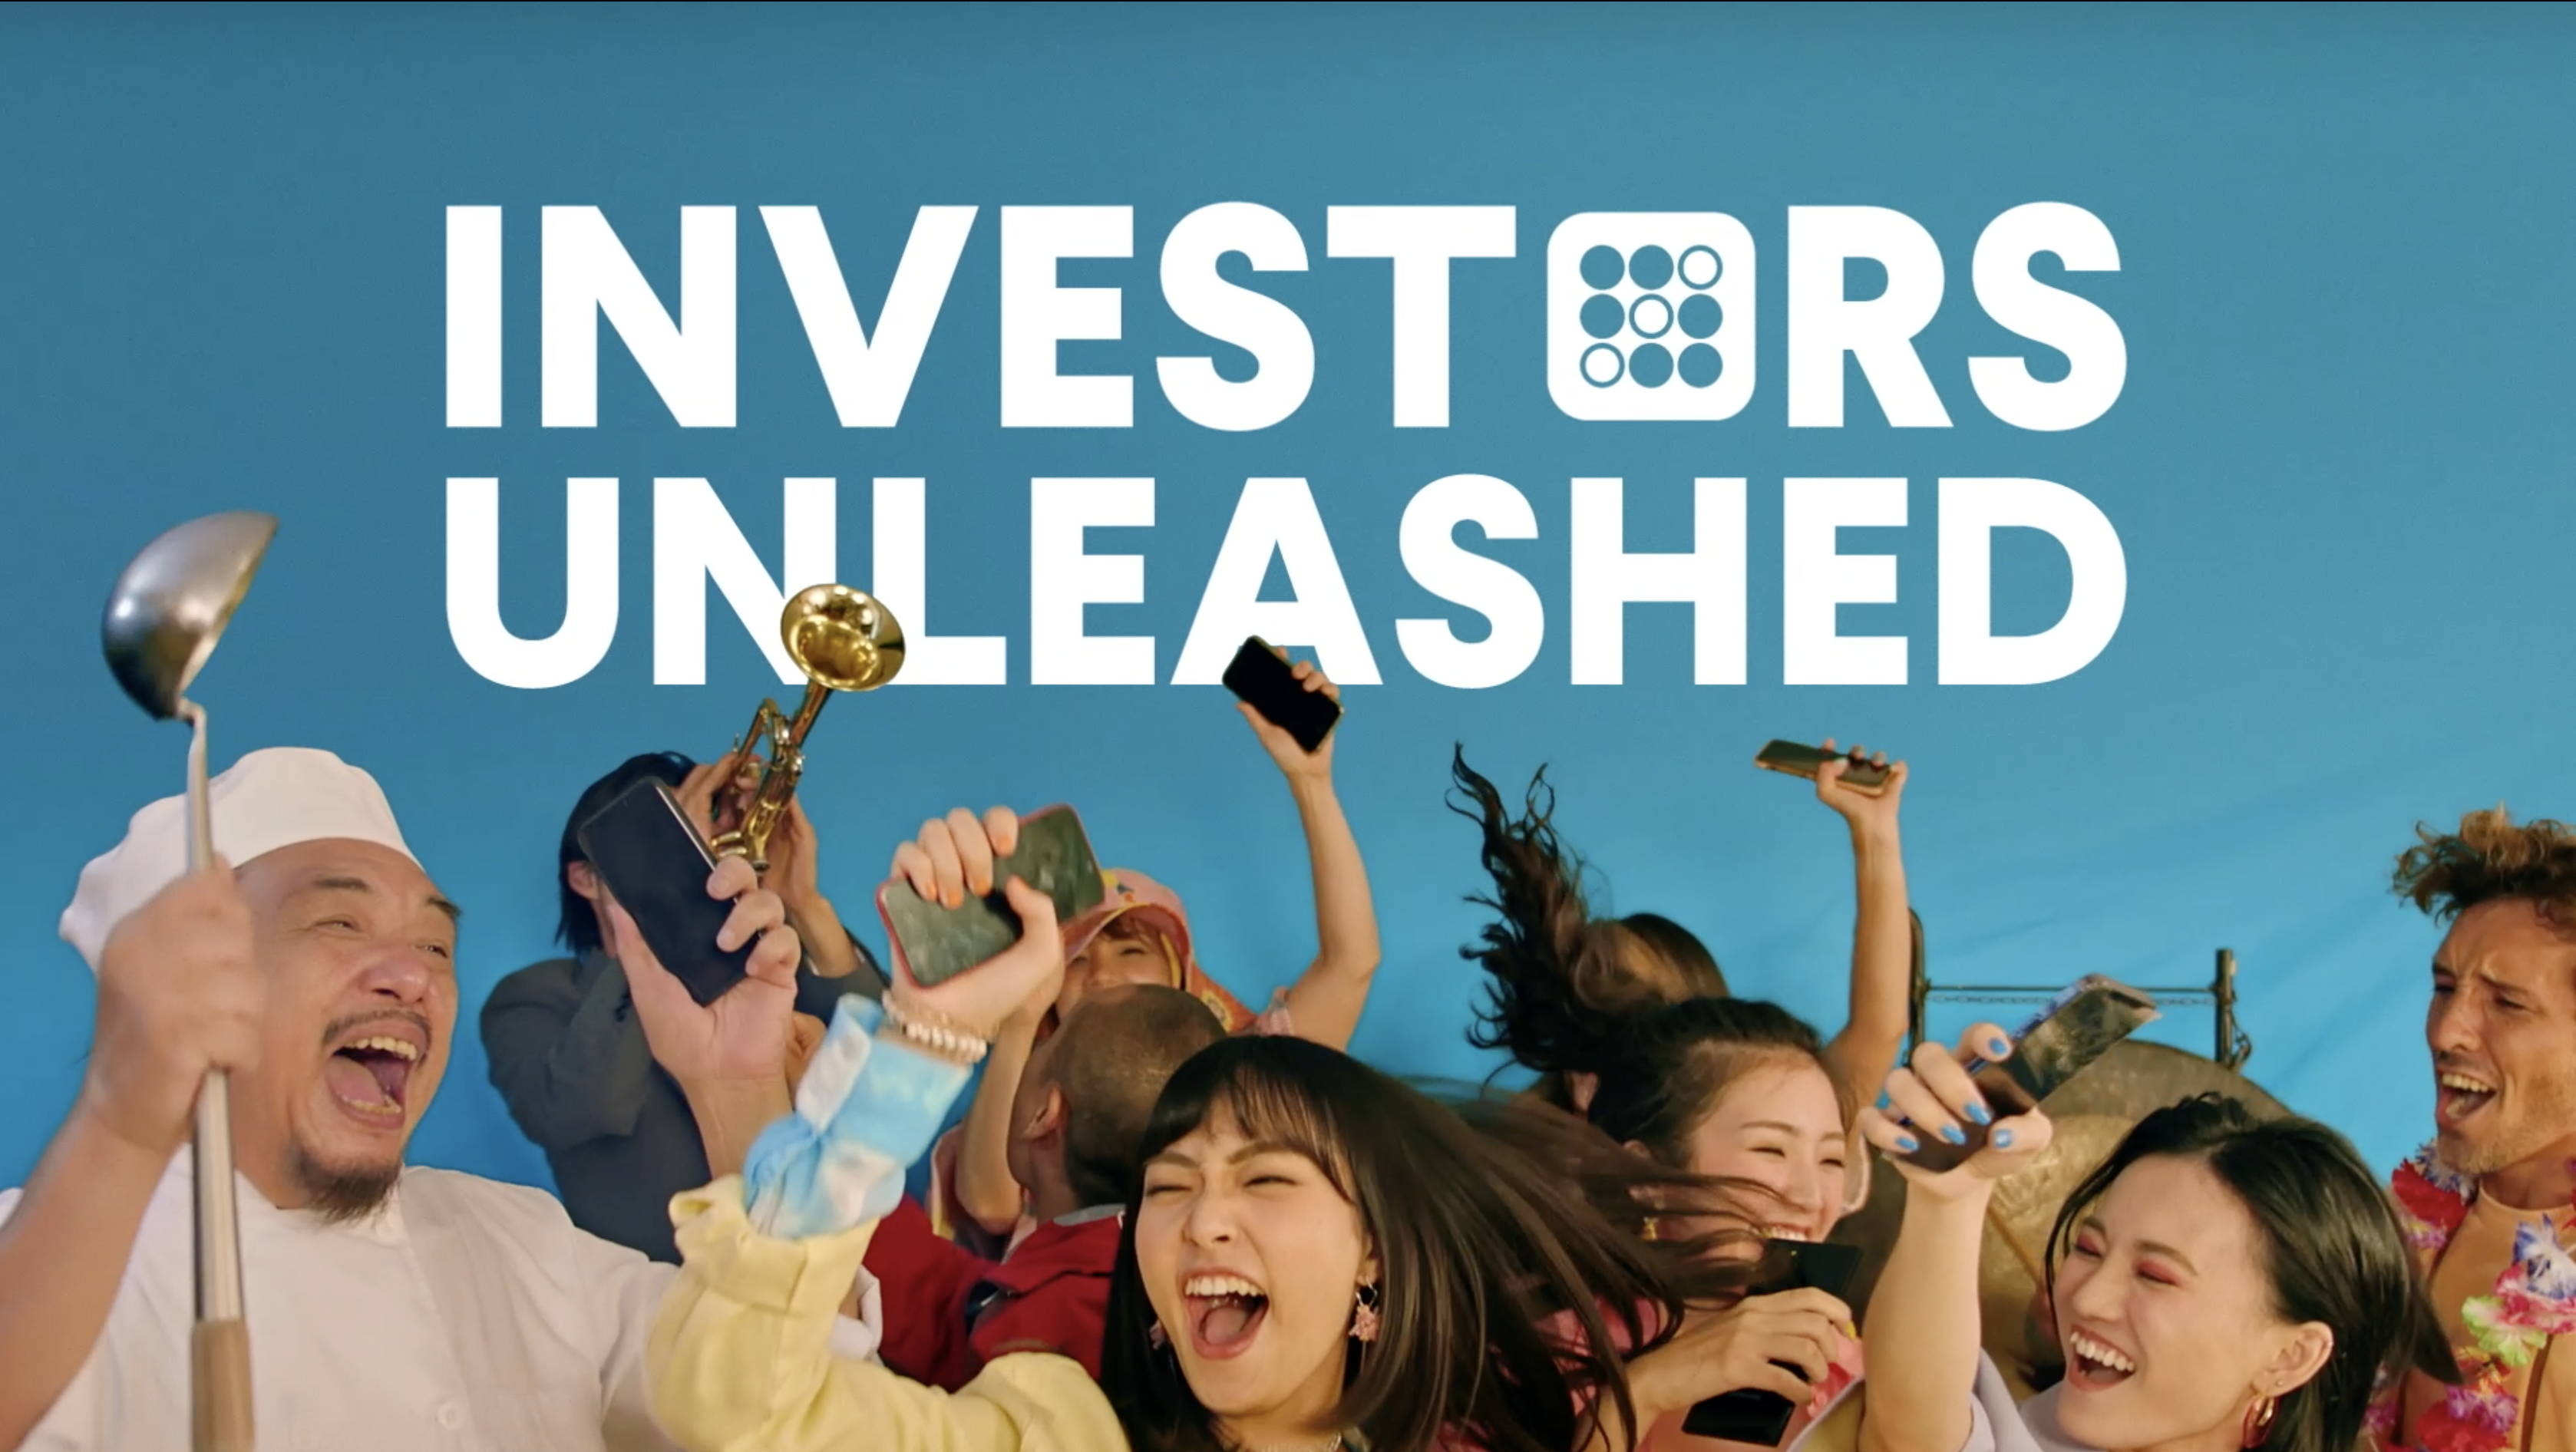 #InvestorsUnleashed – Our awesome new advertising campaign